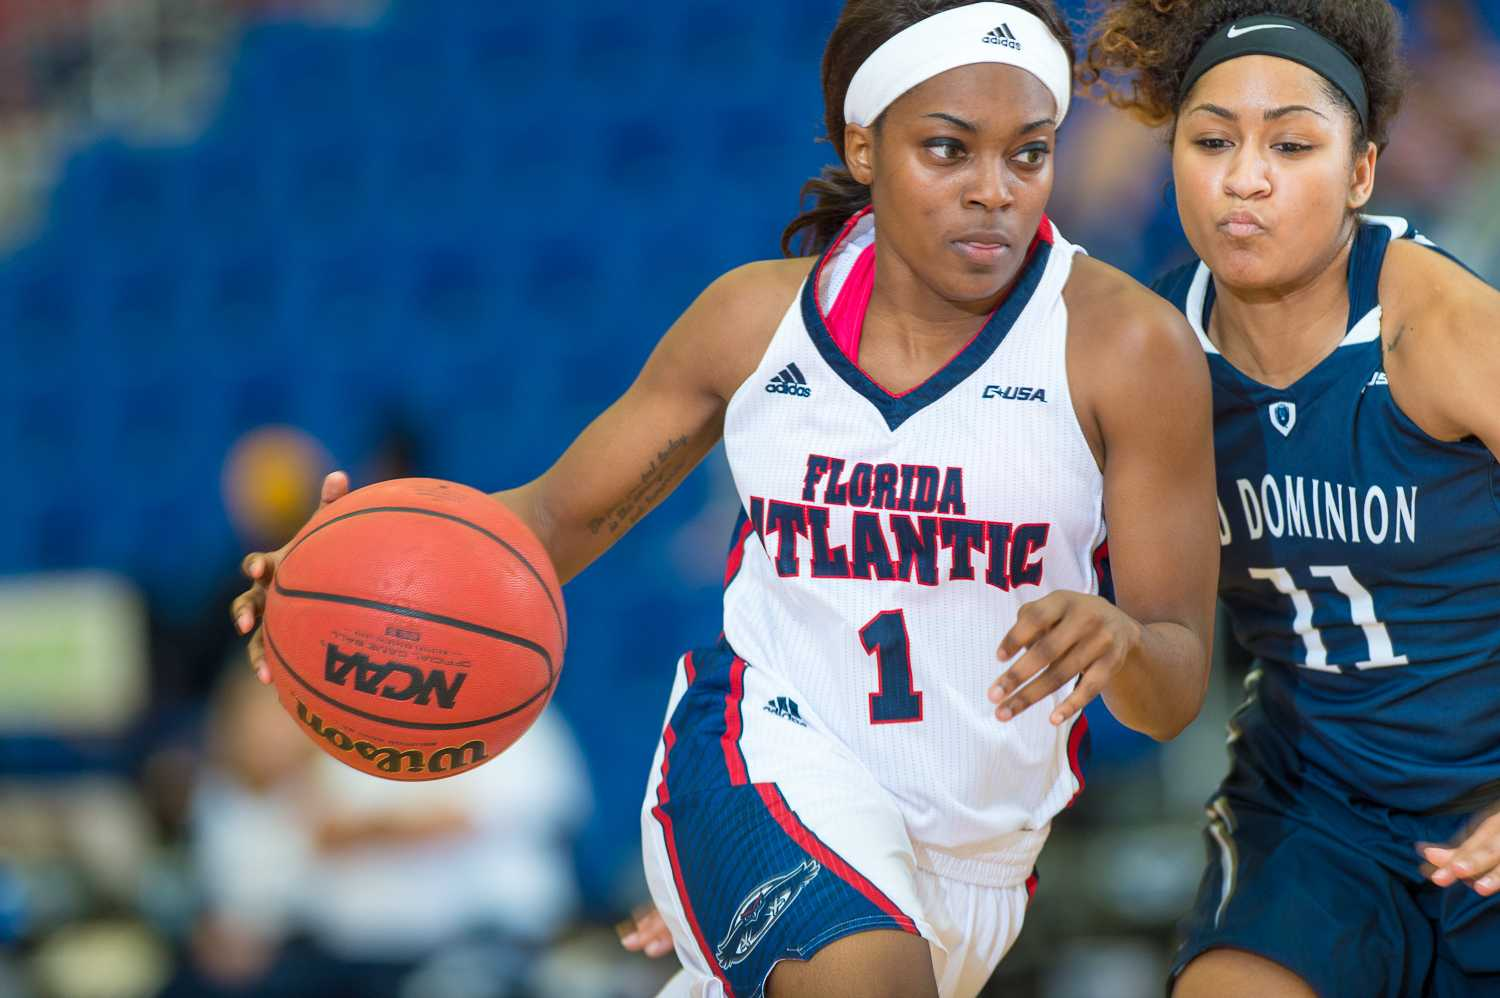 Aaliyah Dotson (1) of FAU drives to the paint around Ashley Betz-White (11) of ODU. The Owls' lost 72-44 to ODU on Jan. 31.